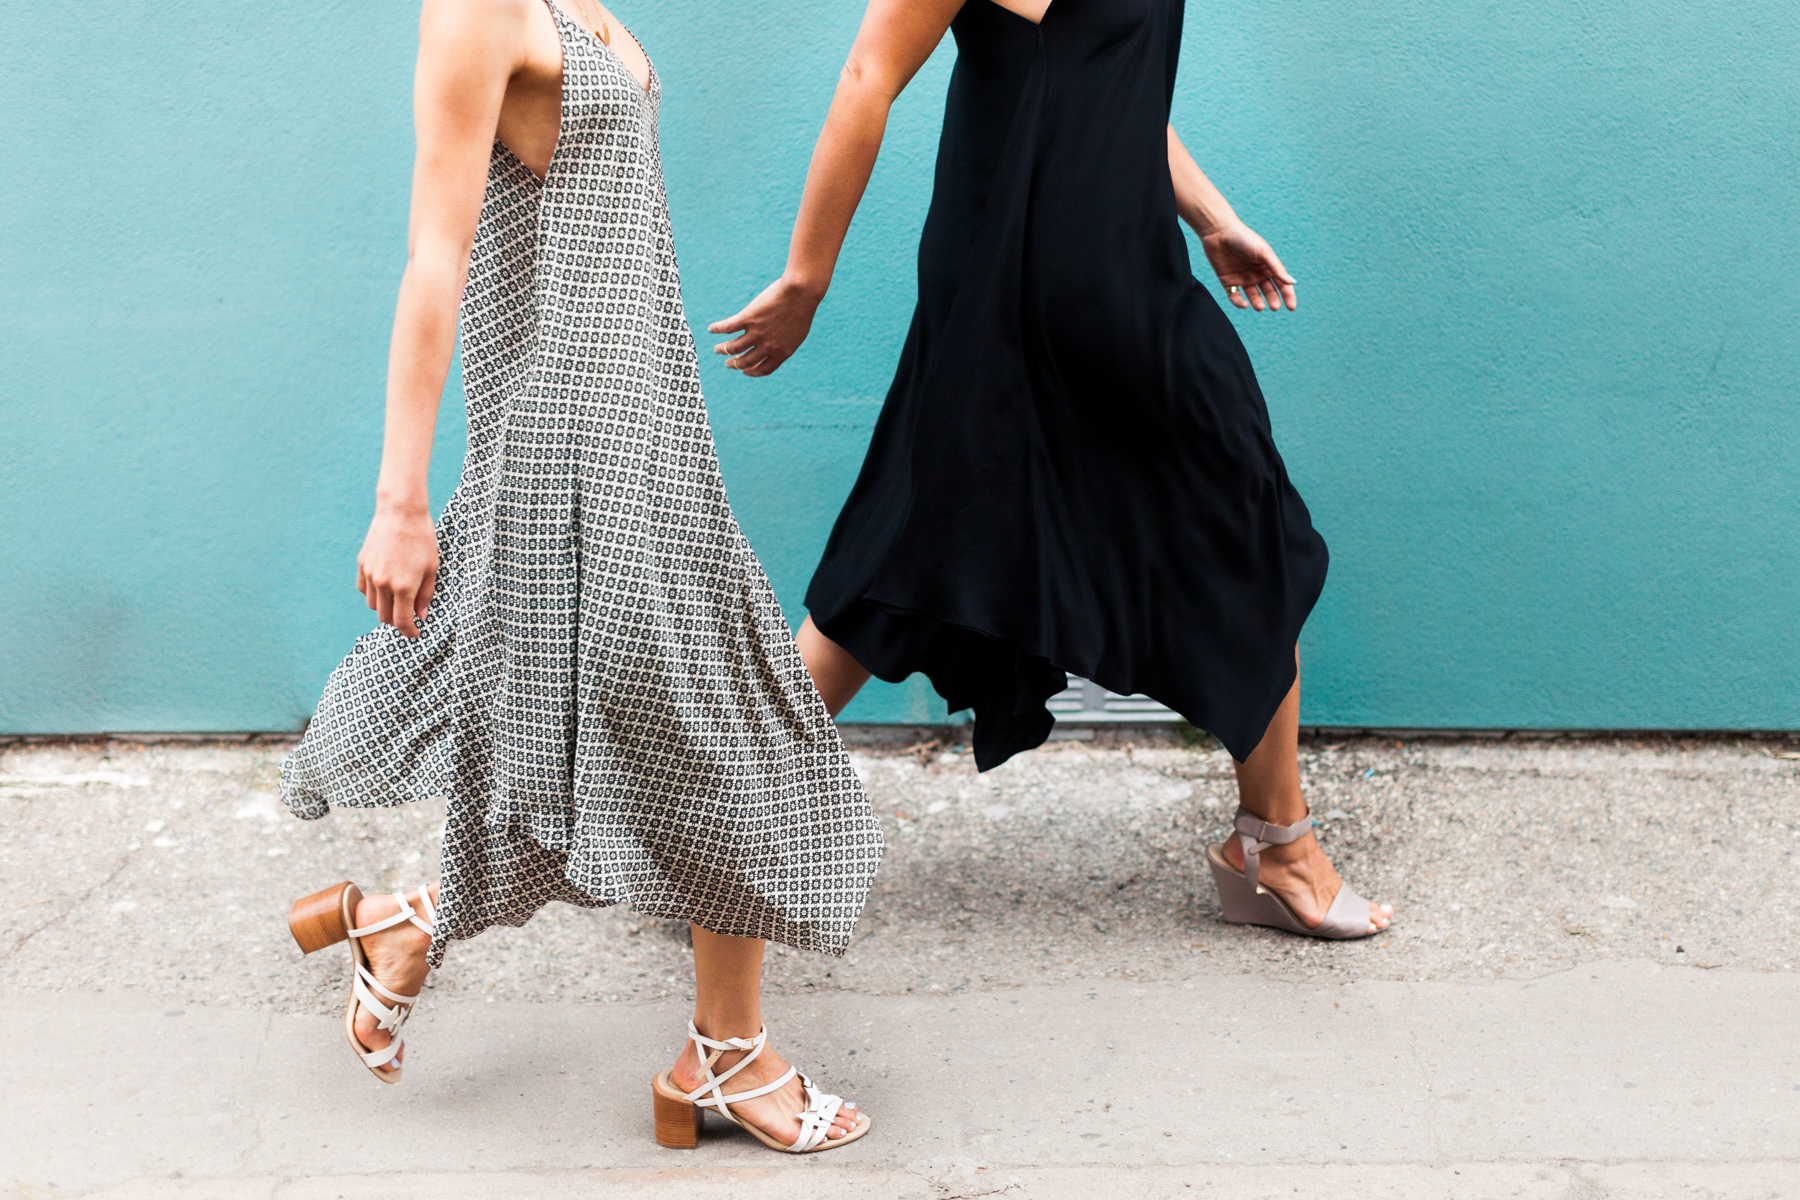 Season creates sustainable silk dresses, handmade in the USA for your eco-friendly capsule wardrobe.